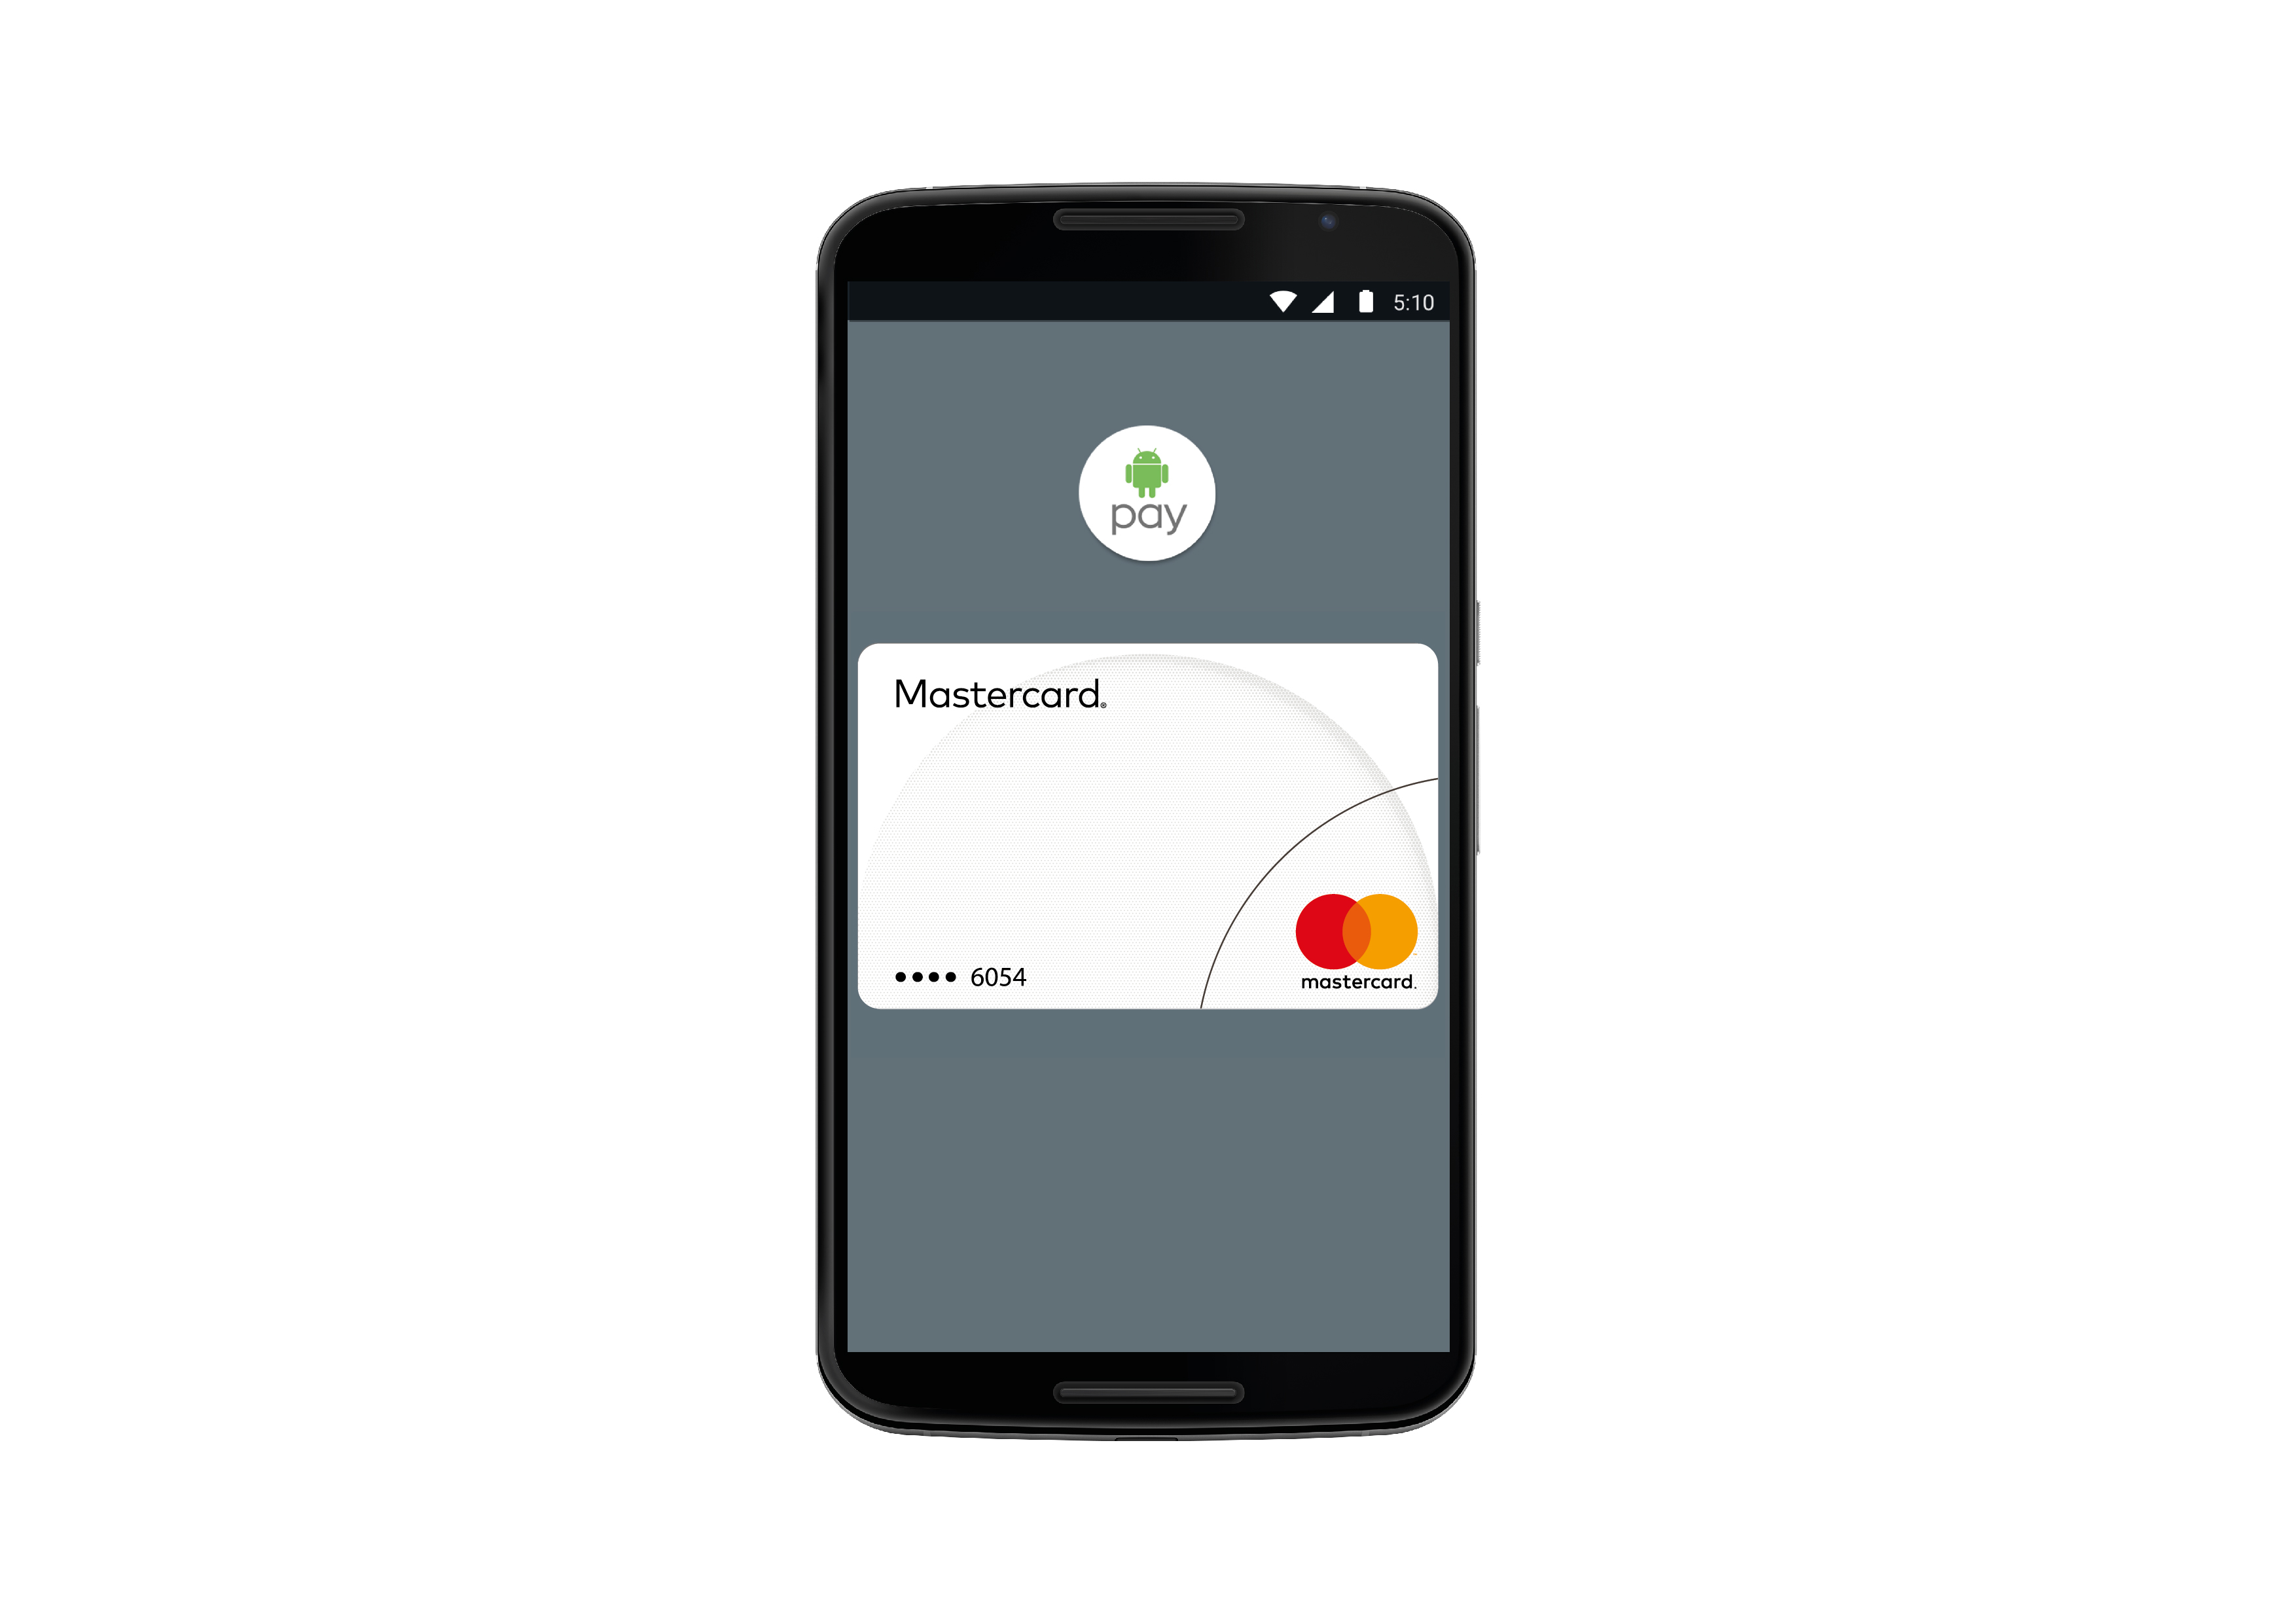 android-pay_landscape_jpeg